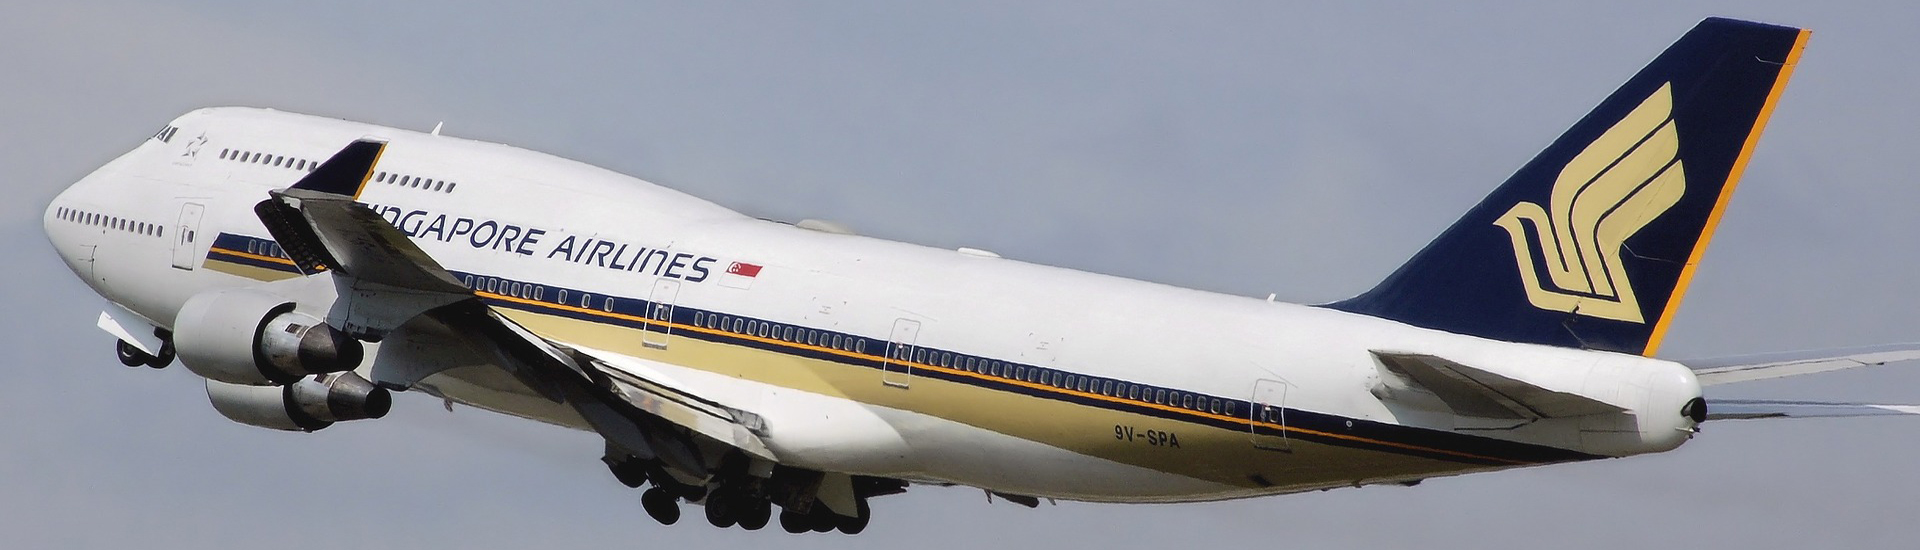 MR Singapore Airlines